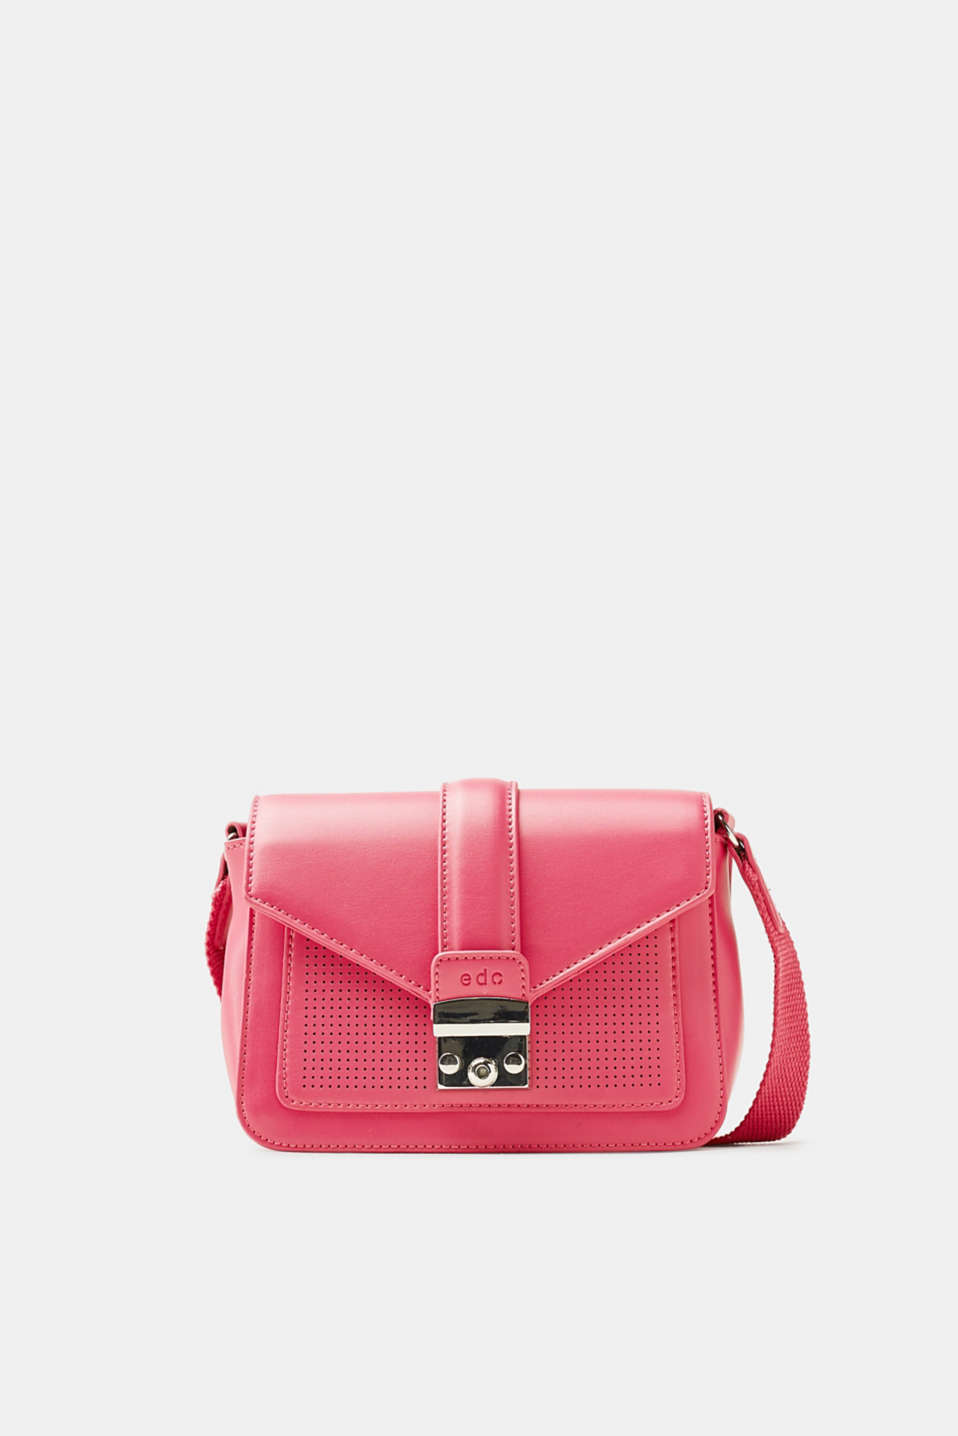 This shoulder bag is the new it bag thanks to its bold trend colours!